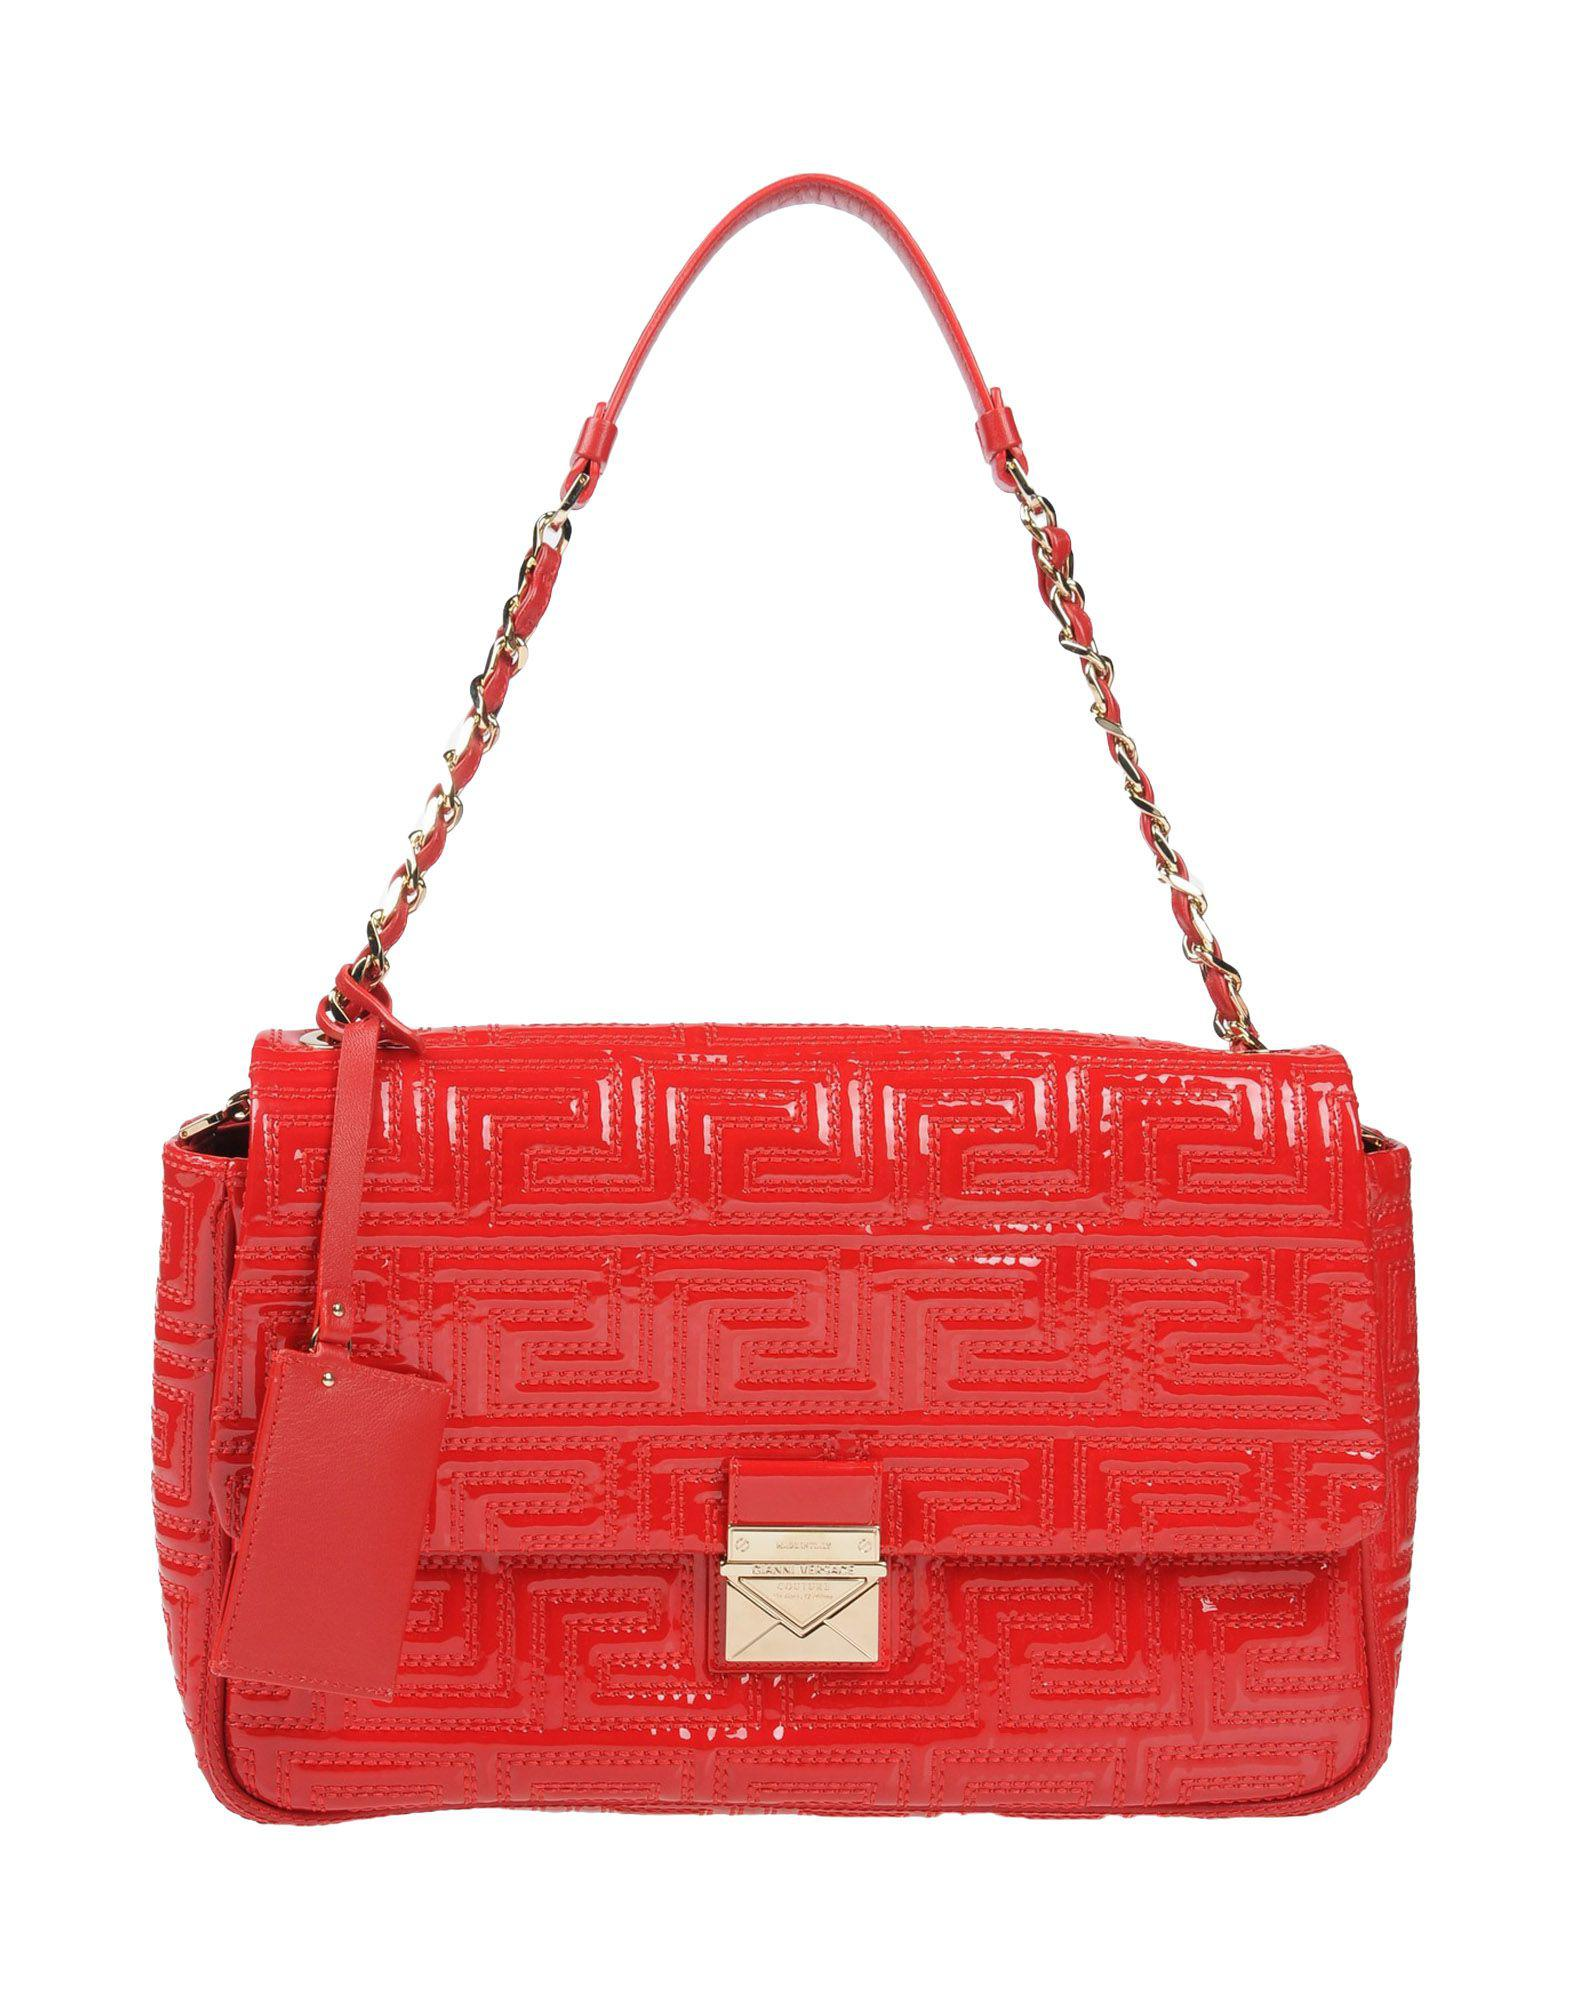 5561a79ad0 Gianni Versace Couture Handbags in Red - Lyst